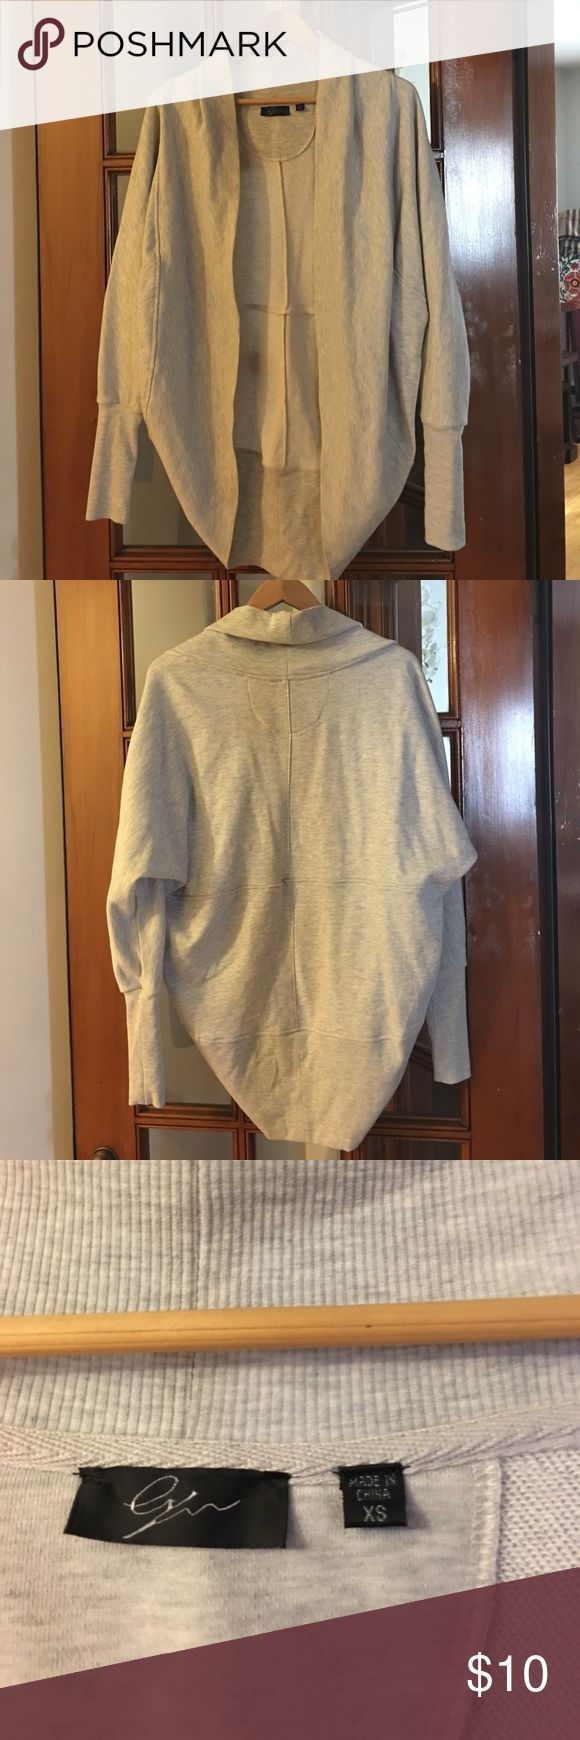 Like New, Grey Shrug. Perfect for Cool Nights! 😍 Never worn grey shrug purchased from TJ Maxx. Great for those cool summer nights or even the early fall! Super cute, comfortable and goes with everything! 💕 Sweaters Cardigans